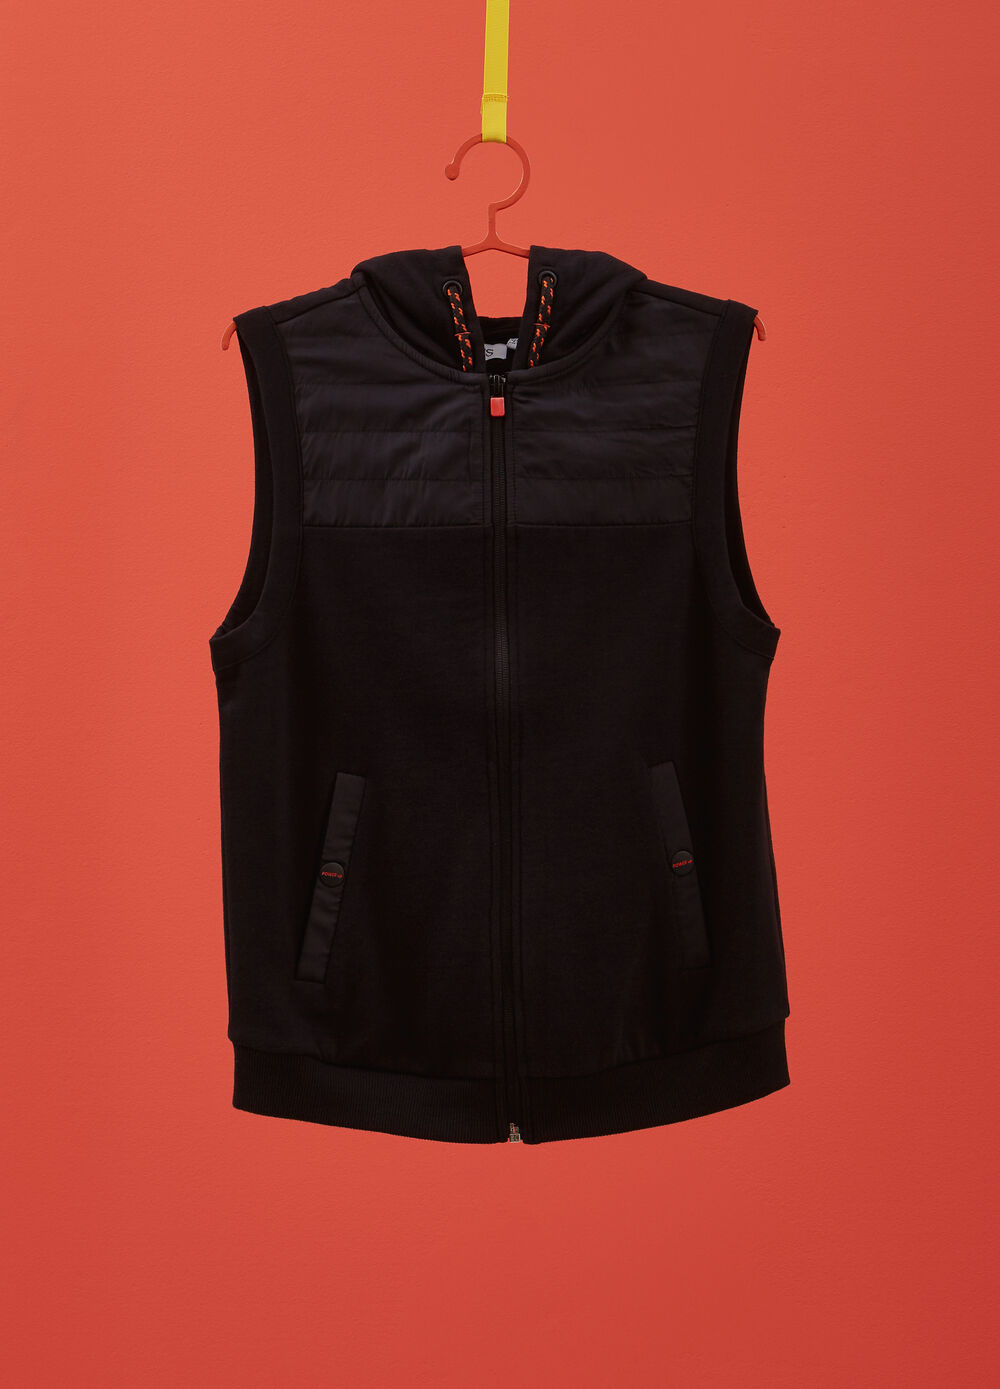 100% cotton gilet with hood and lettering